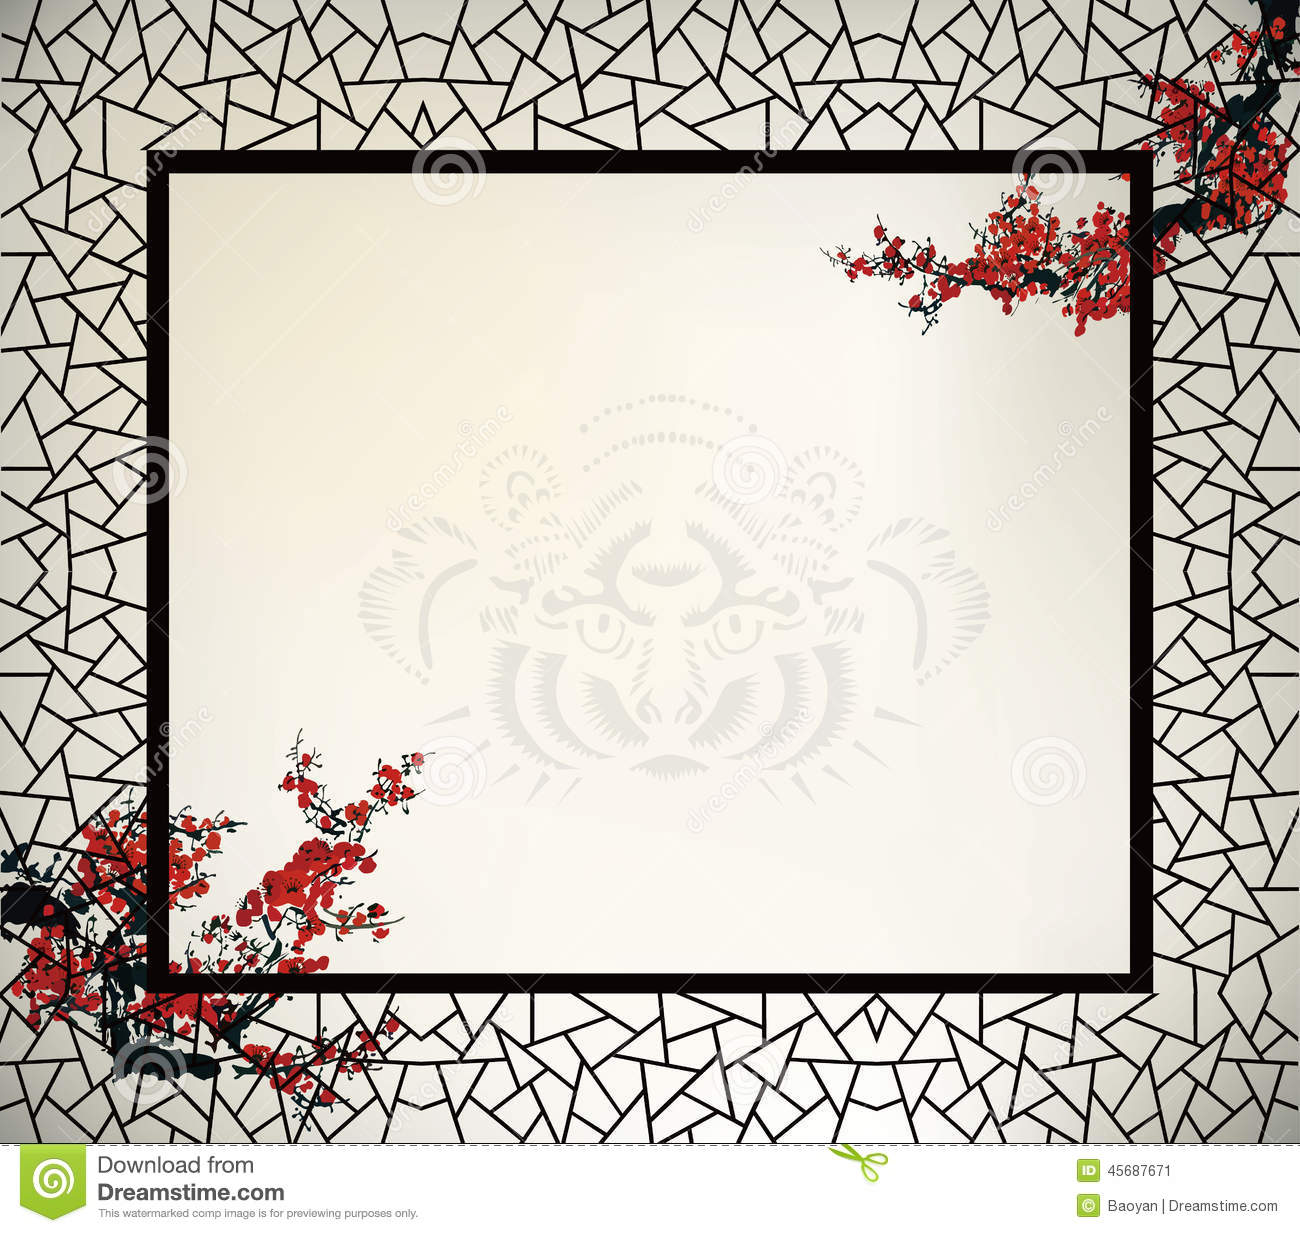 Chinese Window Frame Stock Vector - Image: 45687671